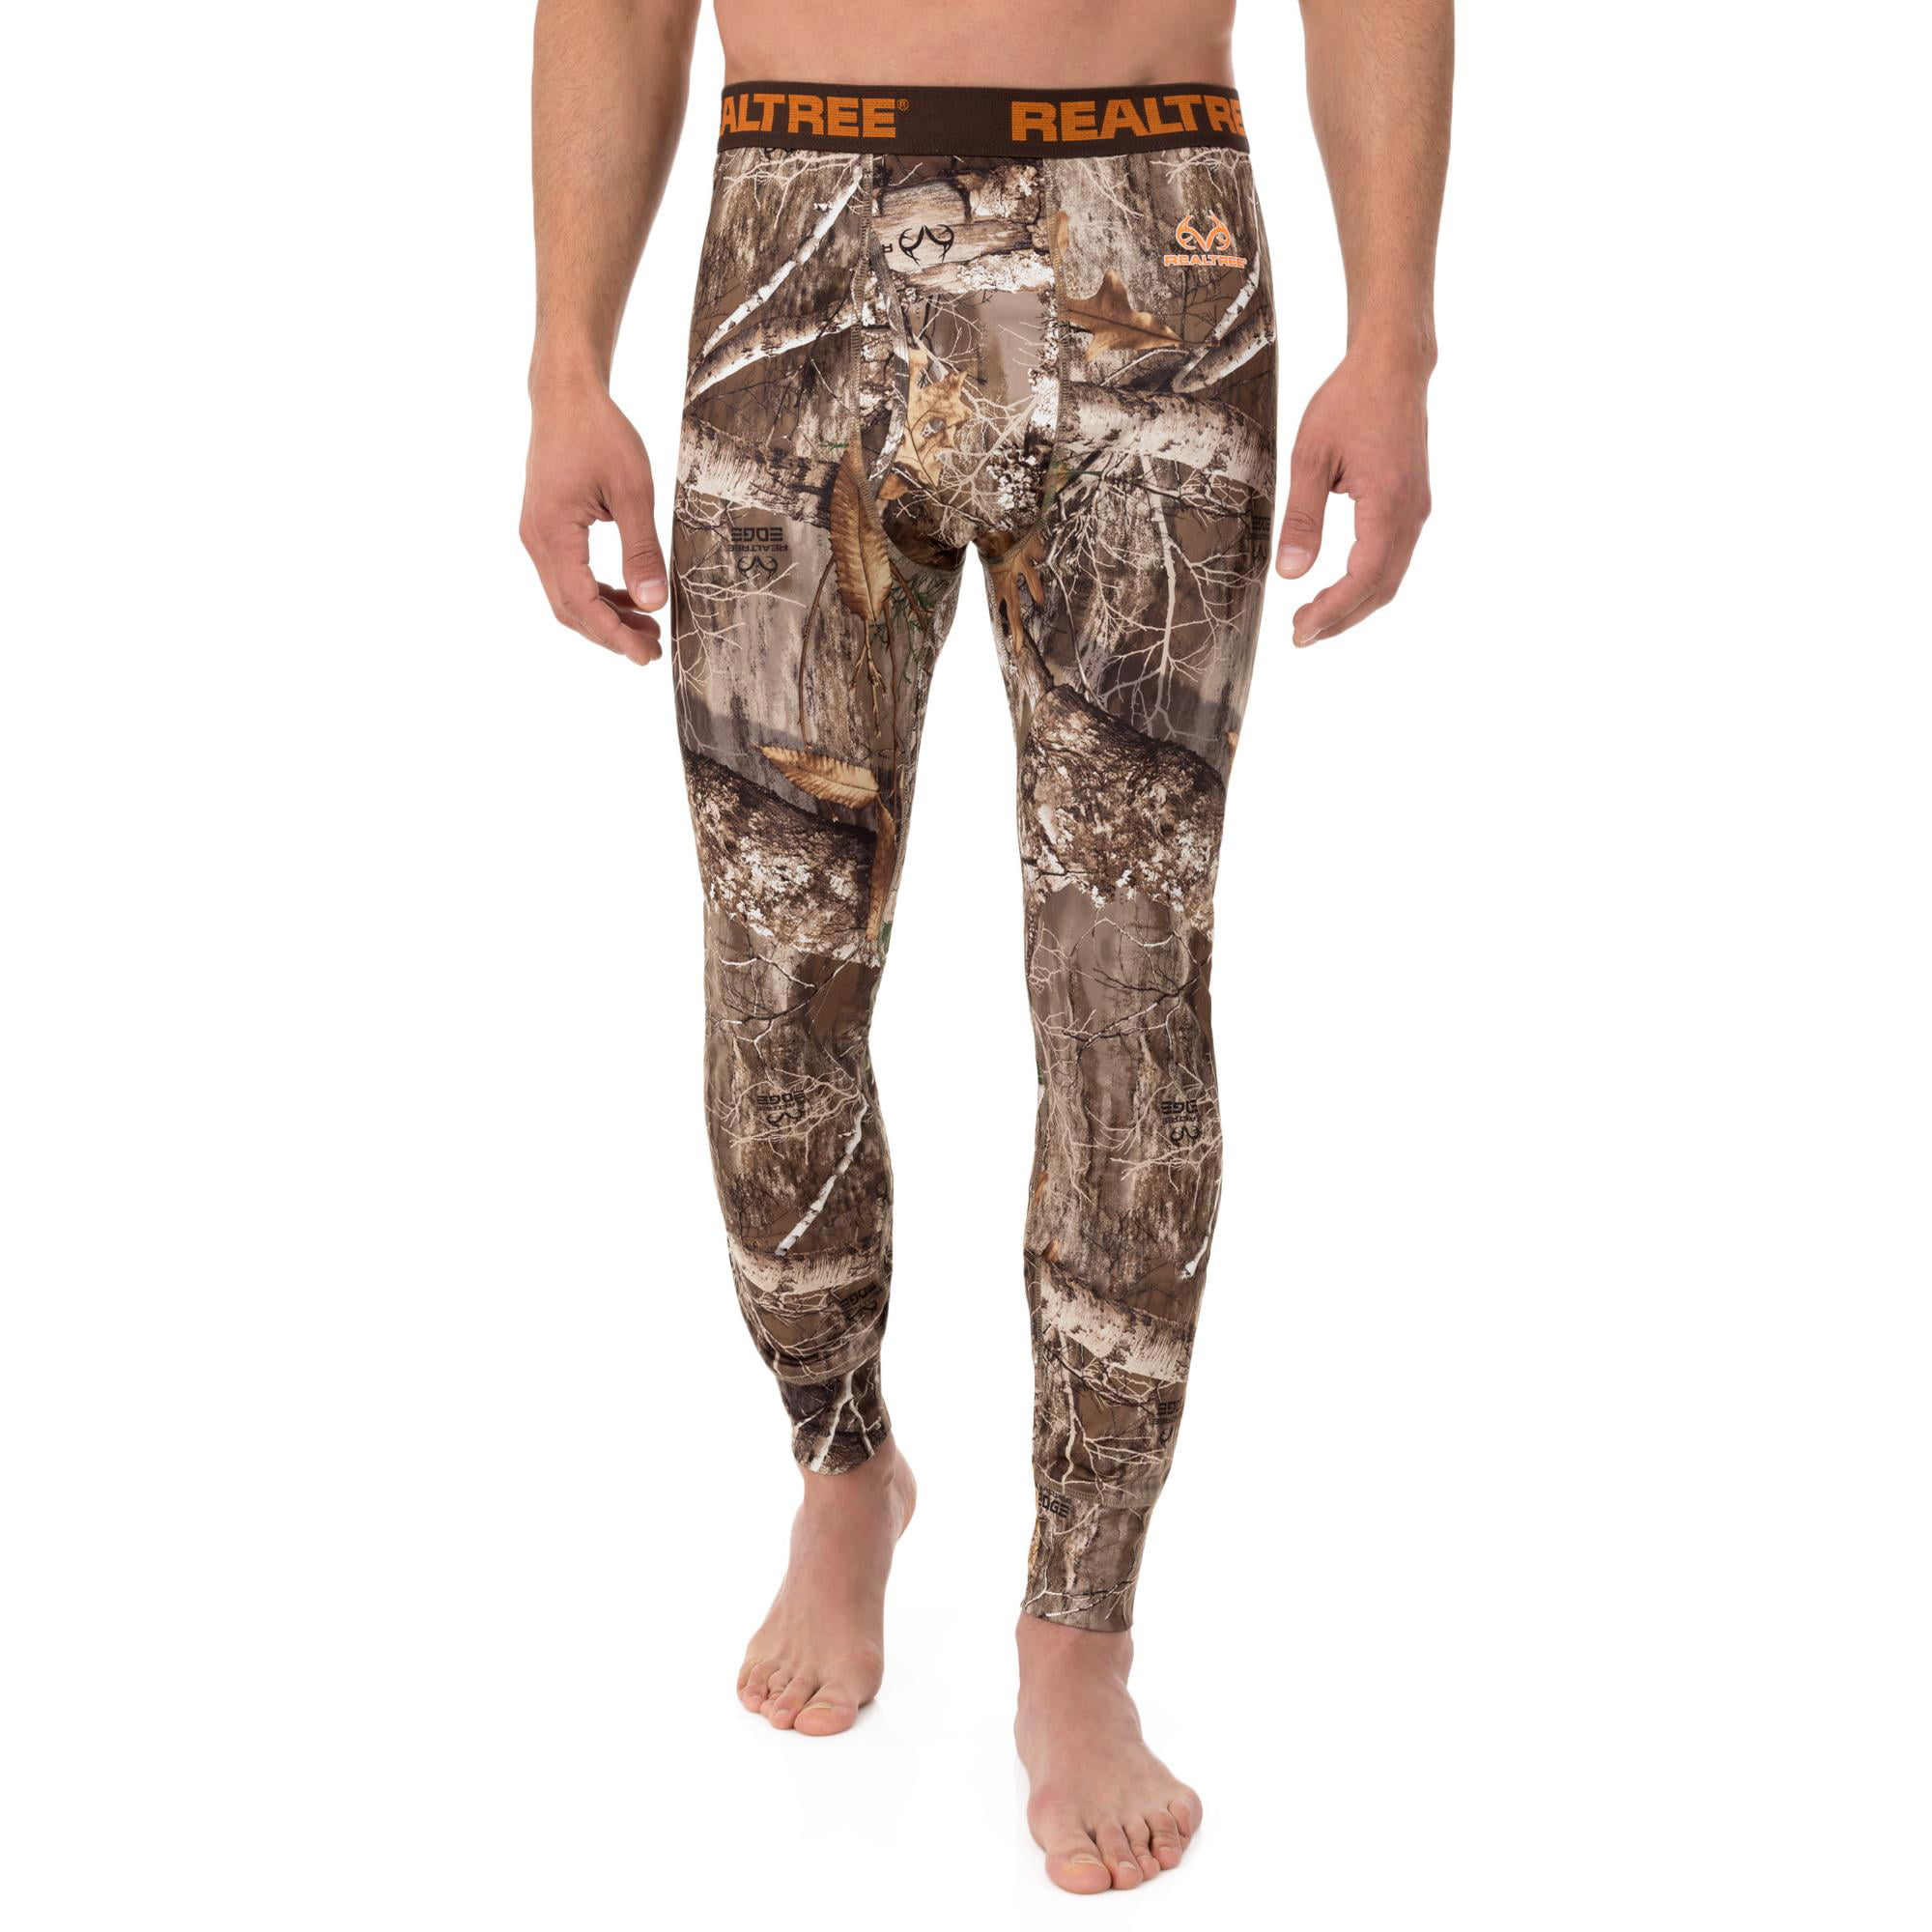 Men's Pintec Thermal Base Layer Bottom